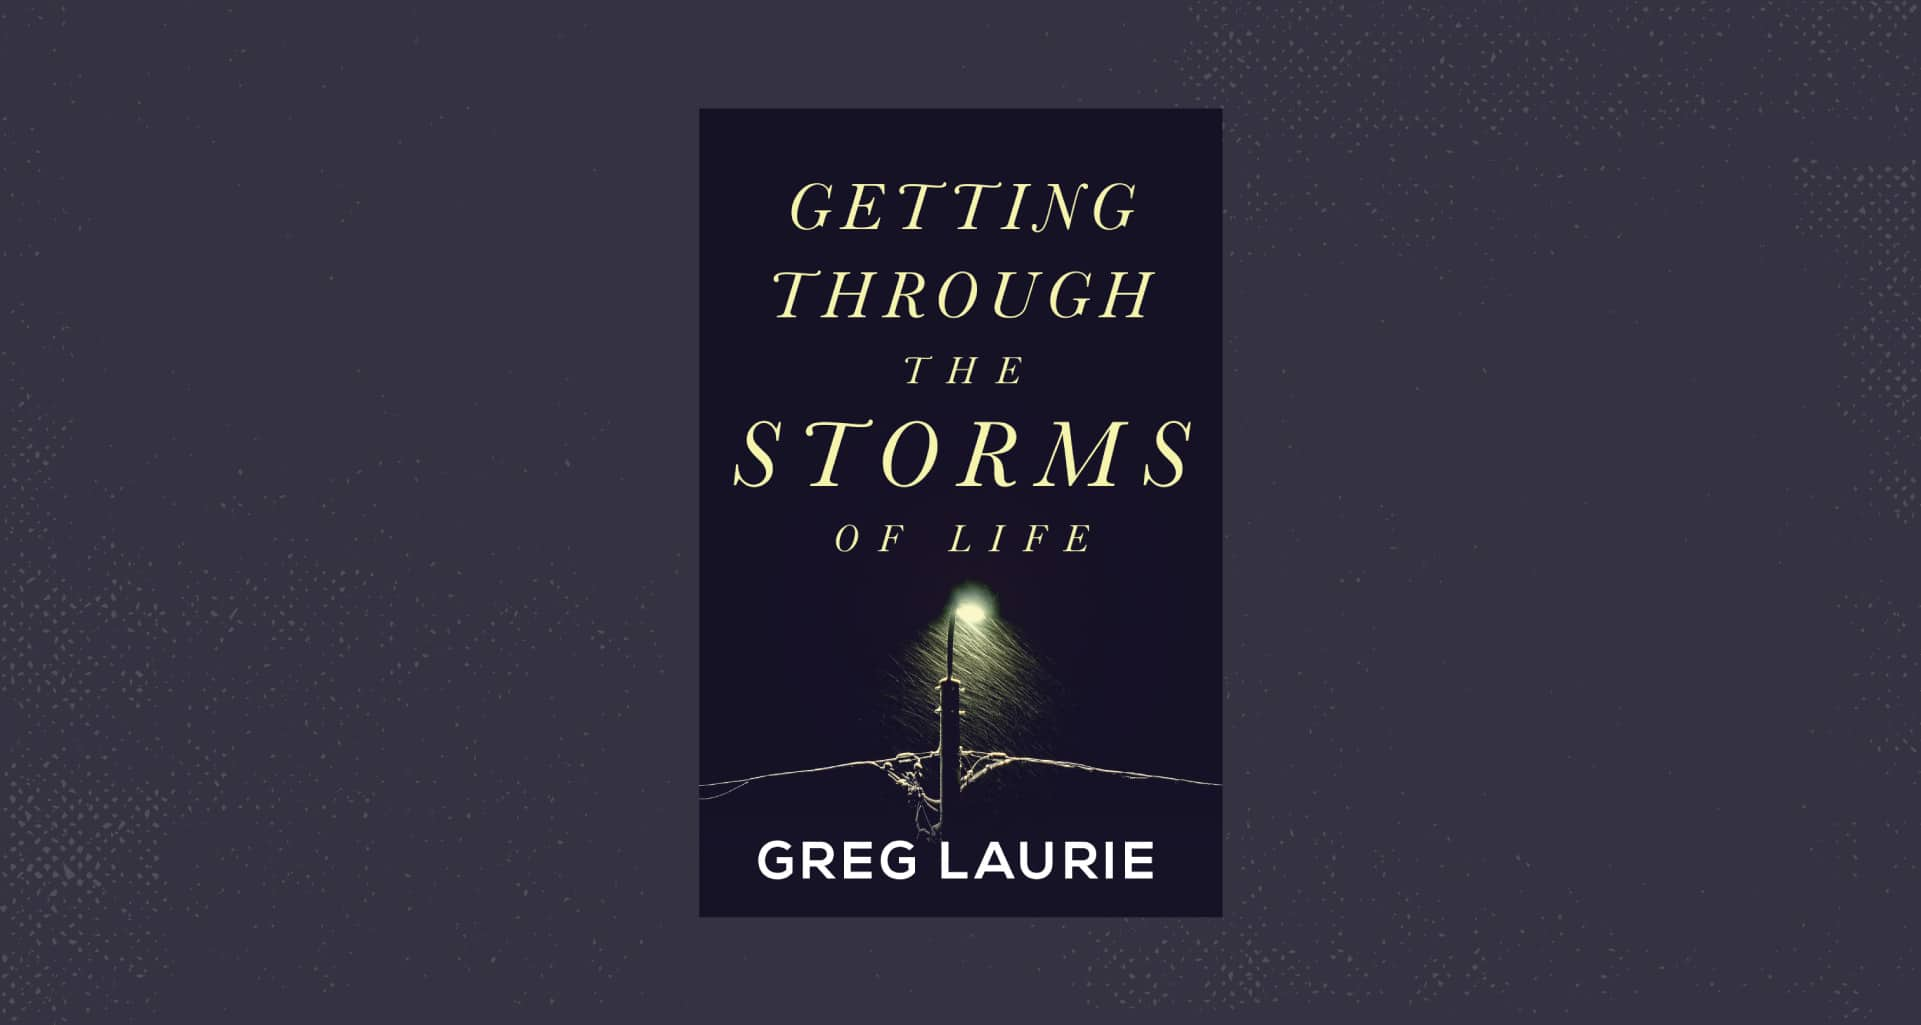 getting through the storms of life greg laurie e-book cover